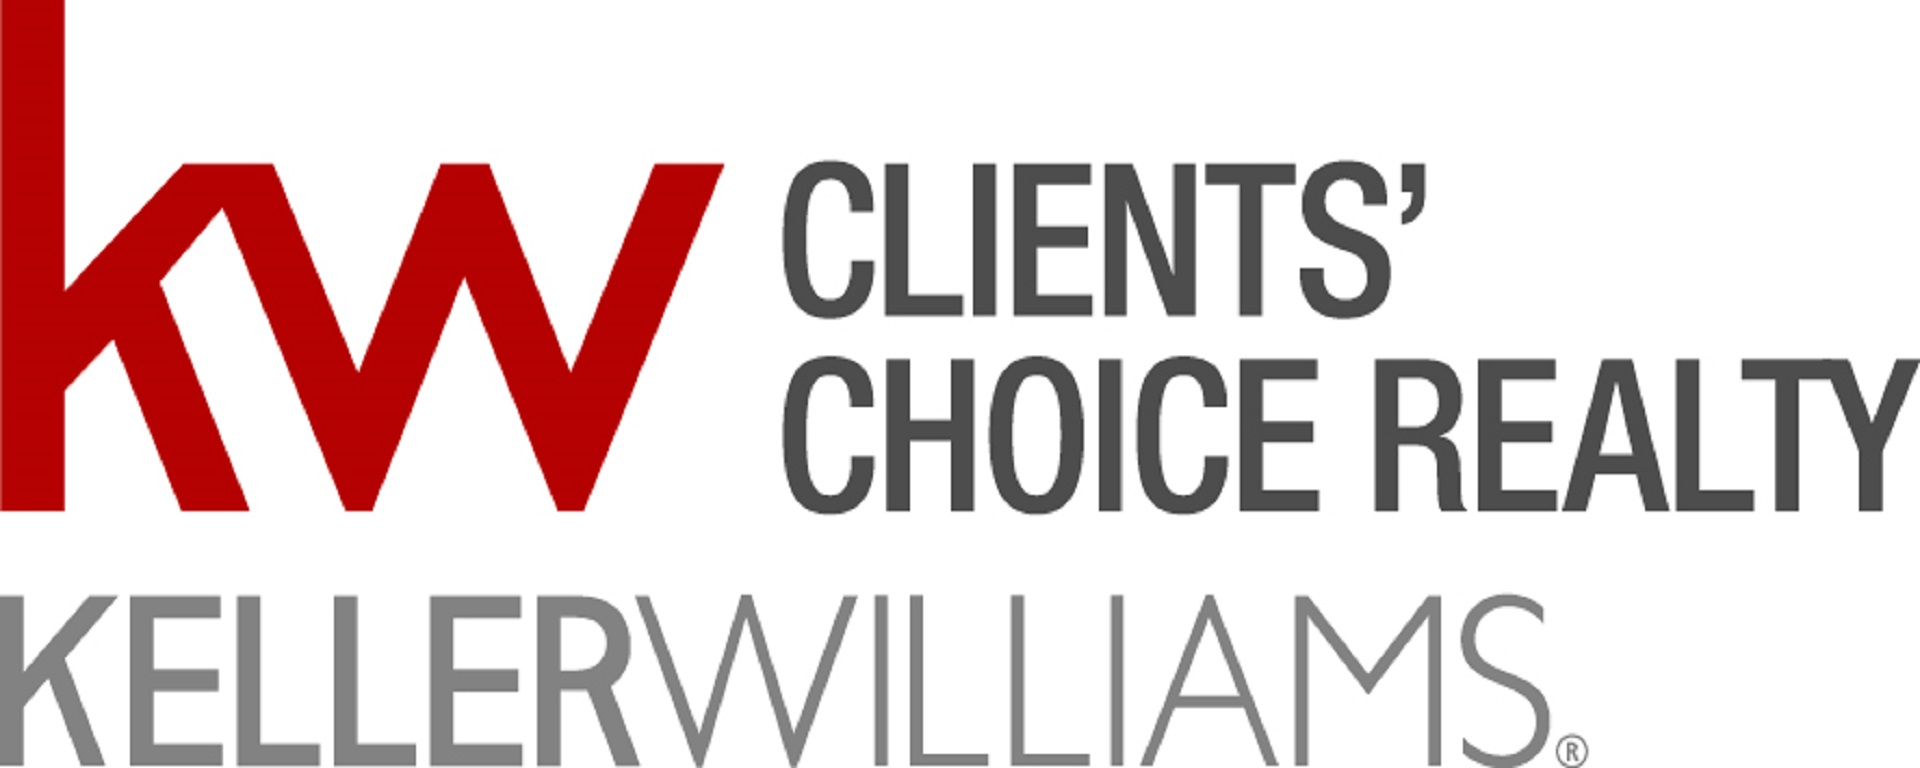 Charles Gilbert Realtor- Colorado Hot Proprties and Keller Williams Clients Choice Realty